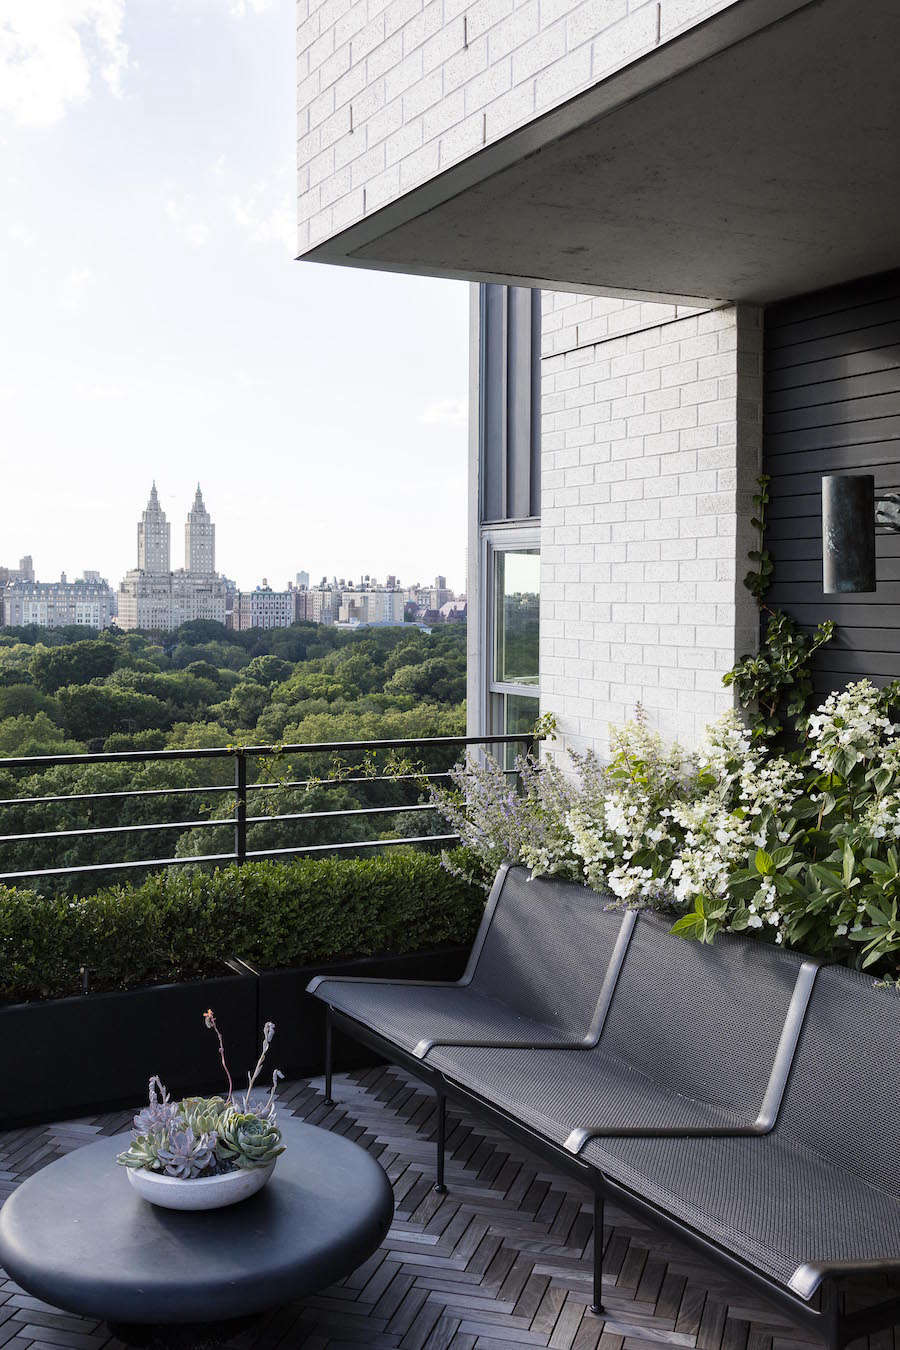 To maintain a clean, uncluttered look on the terrace, Harrison Green and Egan selected Richard Schultz classic aluminum seating designed in the 60s. Not only is it comfortable but it is lightweight and stands up to New York City weather extremes.